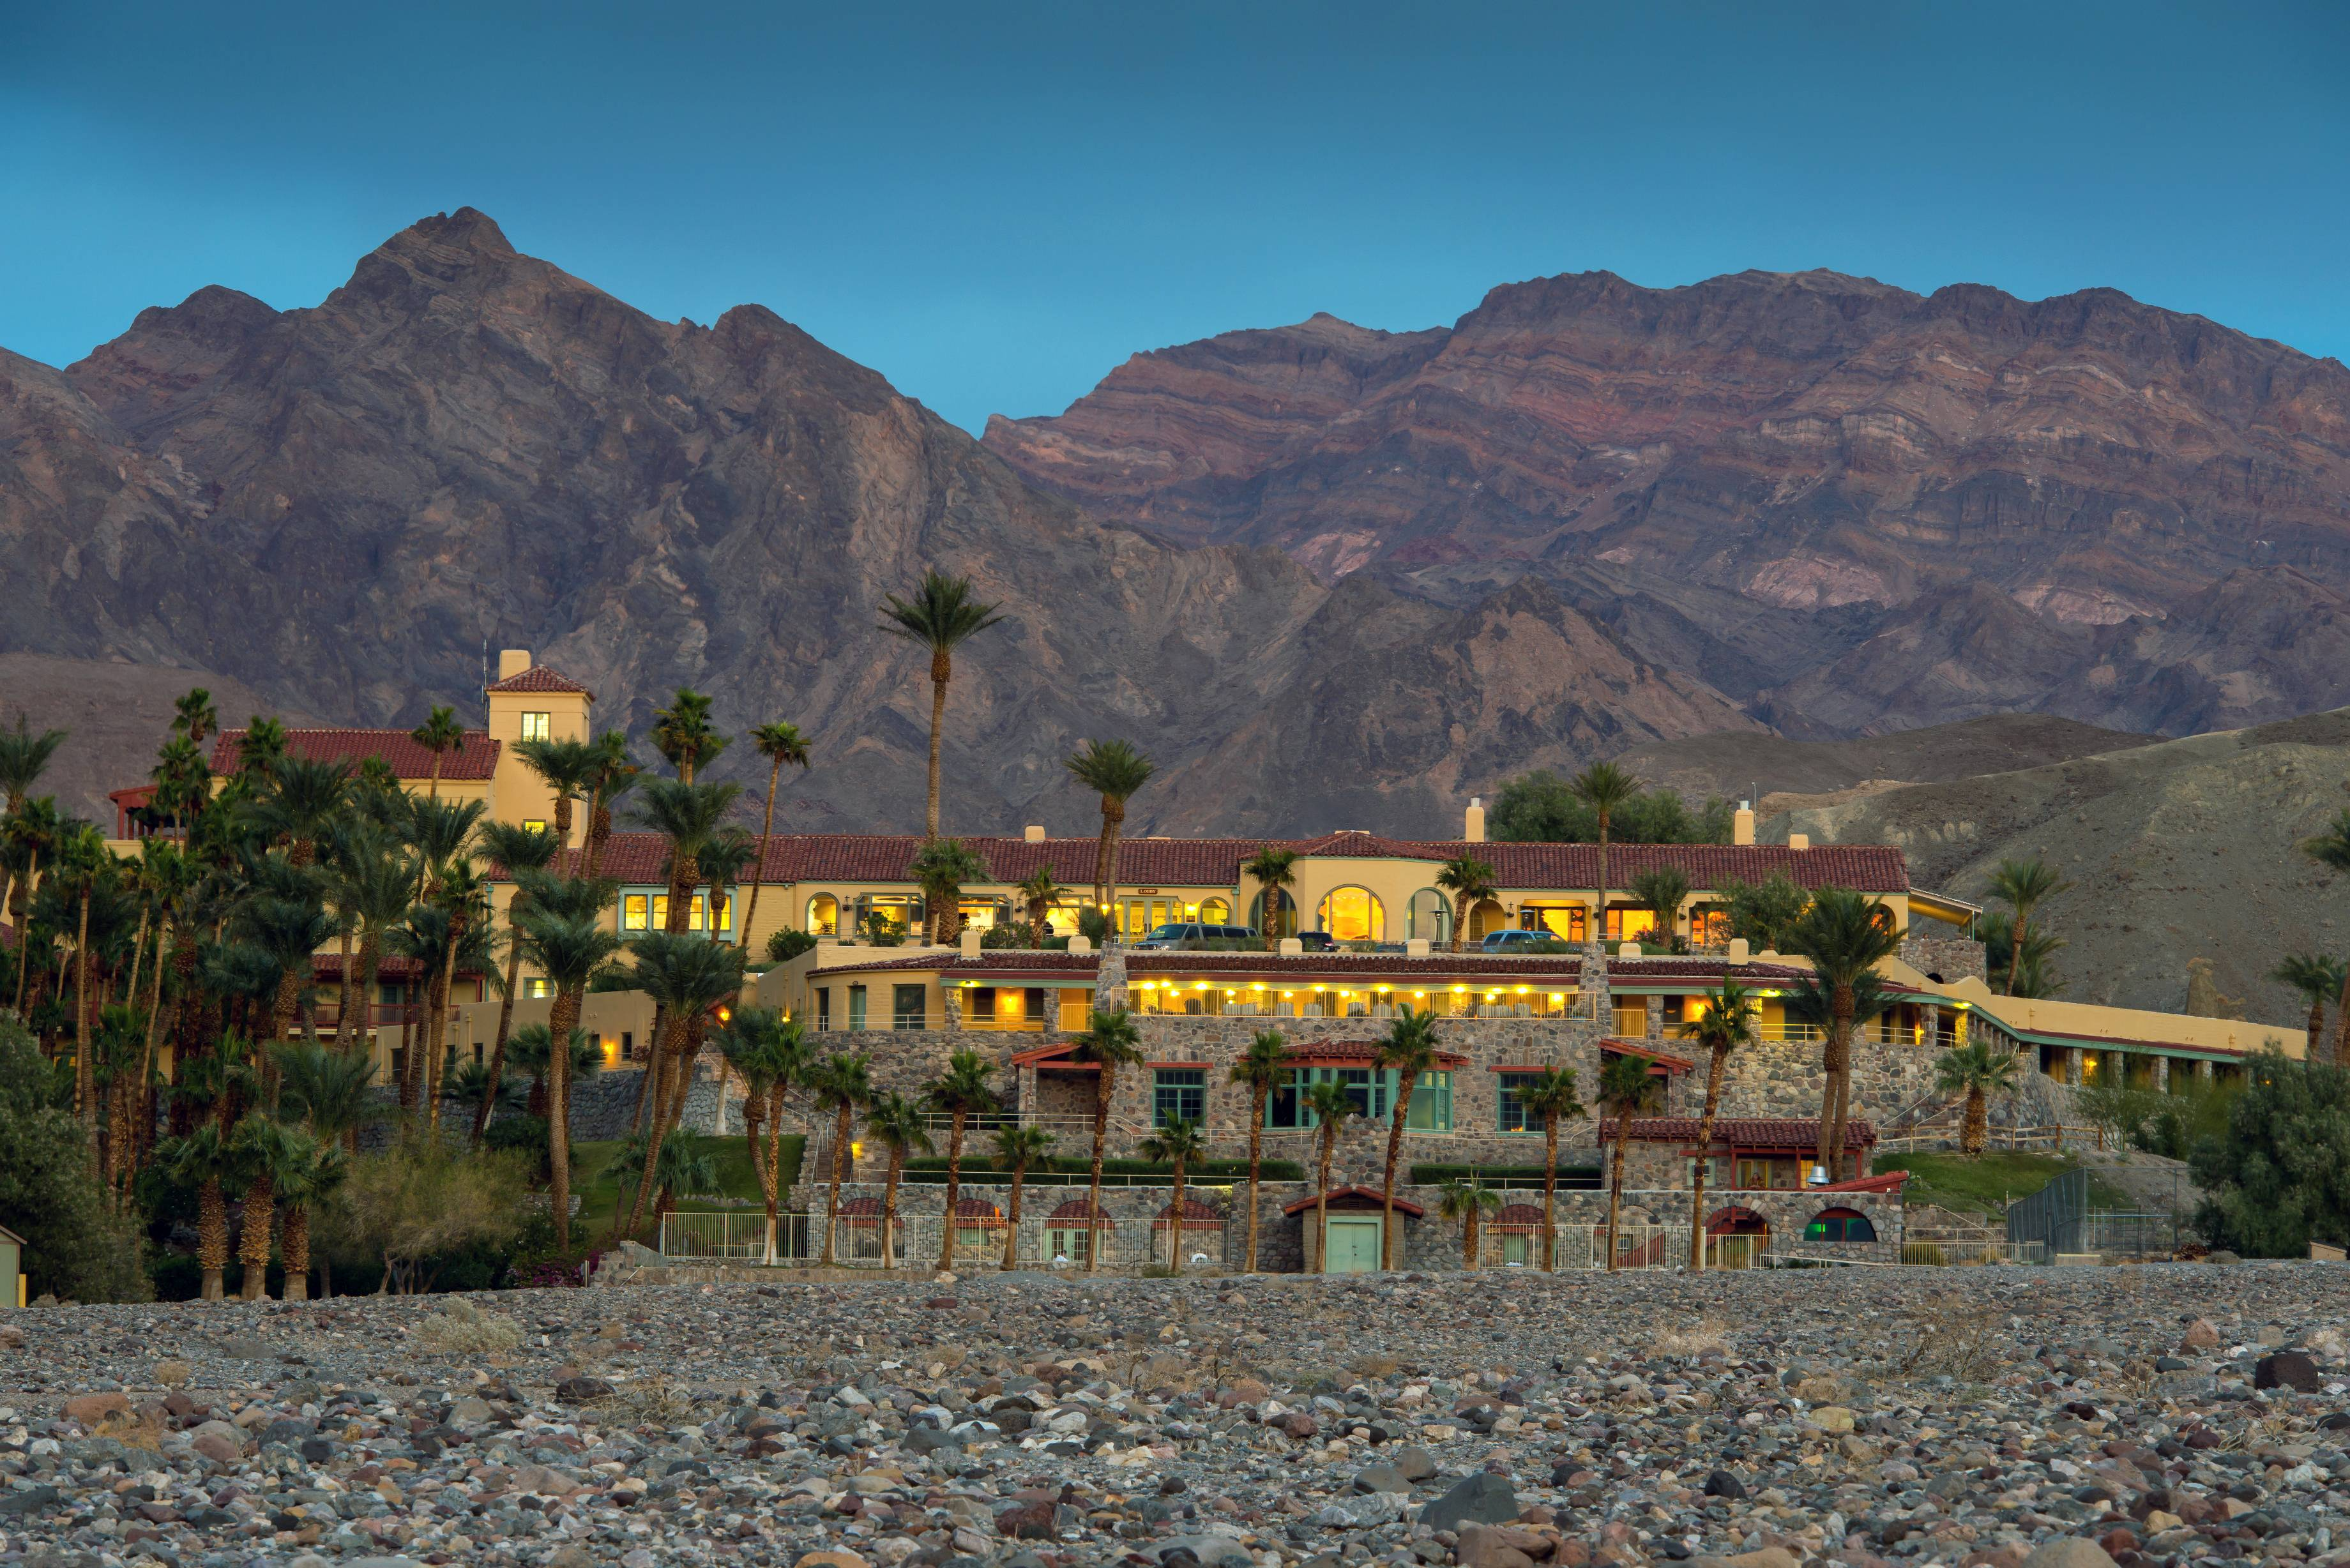 The Furnace Creek Inn, an upscale historic hotel, is typically closed during the hottest times of year, mid-May-October, while the Furnace Creek Ranch is open year-round.